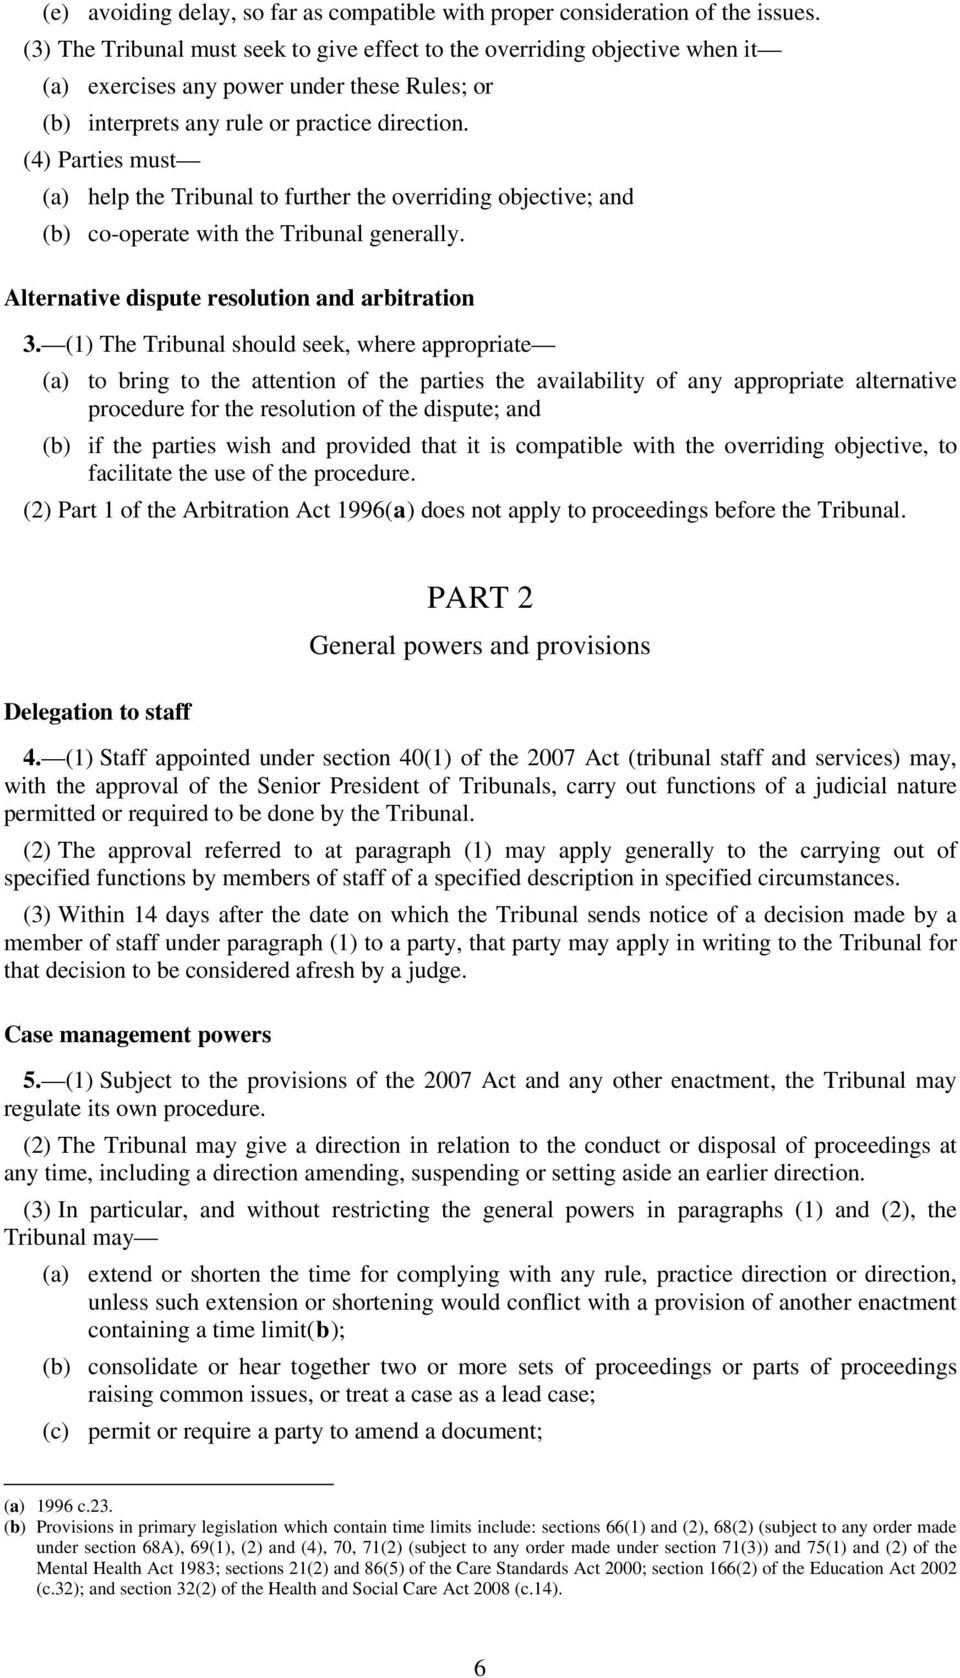 (4) Parties must (a) help the Tribunal to further the overriding objective; and (b) co-operate with the Tribunal generally. Alternative dispute resolution and arbitration 3.